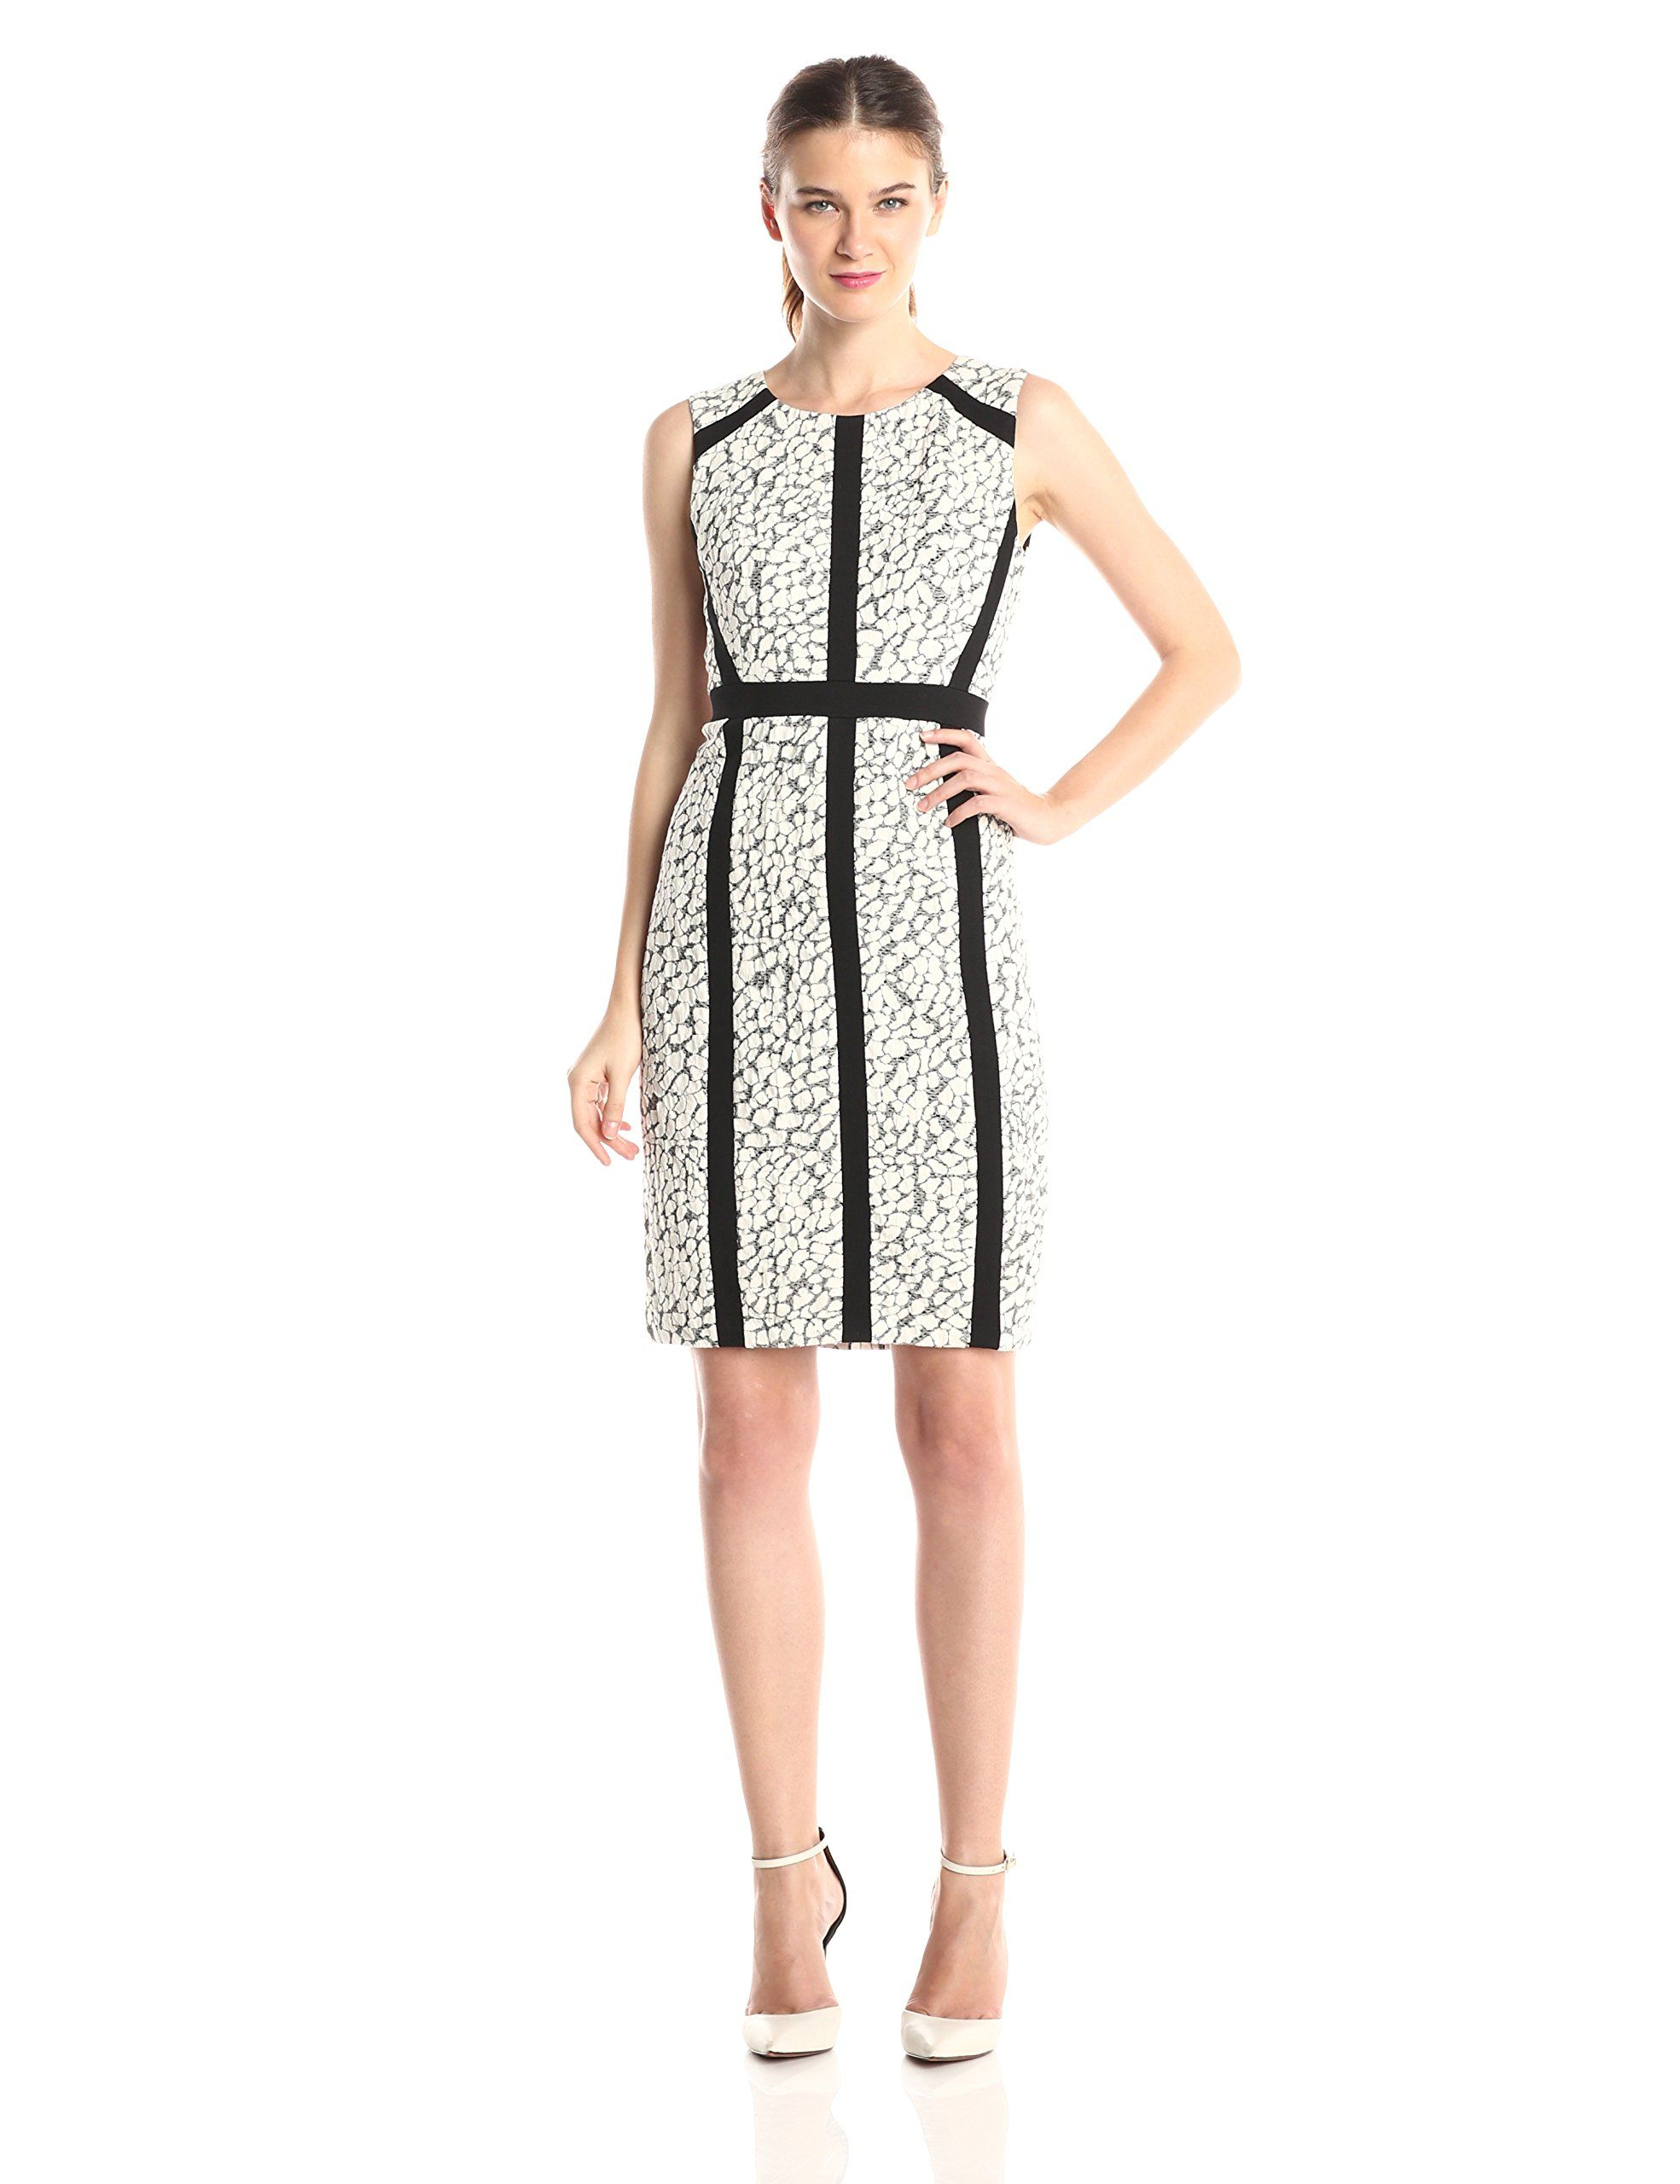 Nydj Womens Nora Animal Jacquard Dress Winter White 14 To View Further For This Item Visit The Image Link This Is Dresses Jacquard Dress Winter Dresses [ 2560 x 1969 Pixel ]